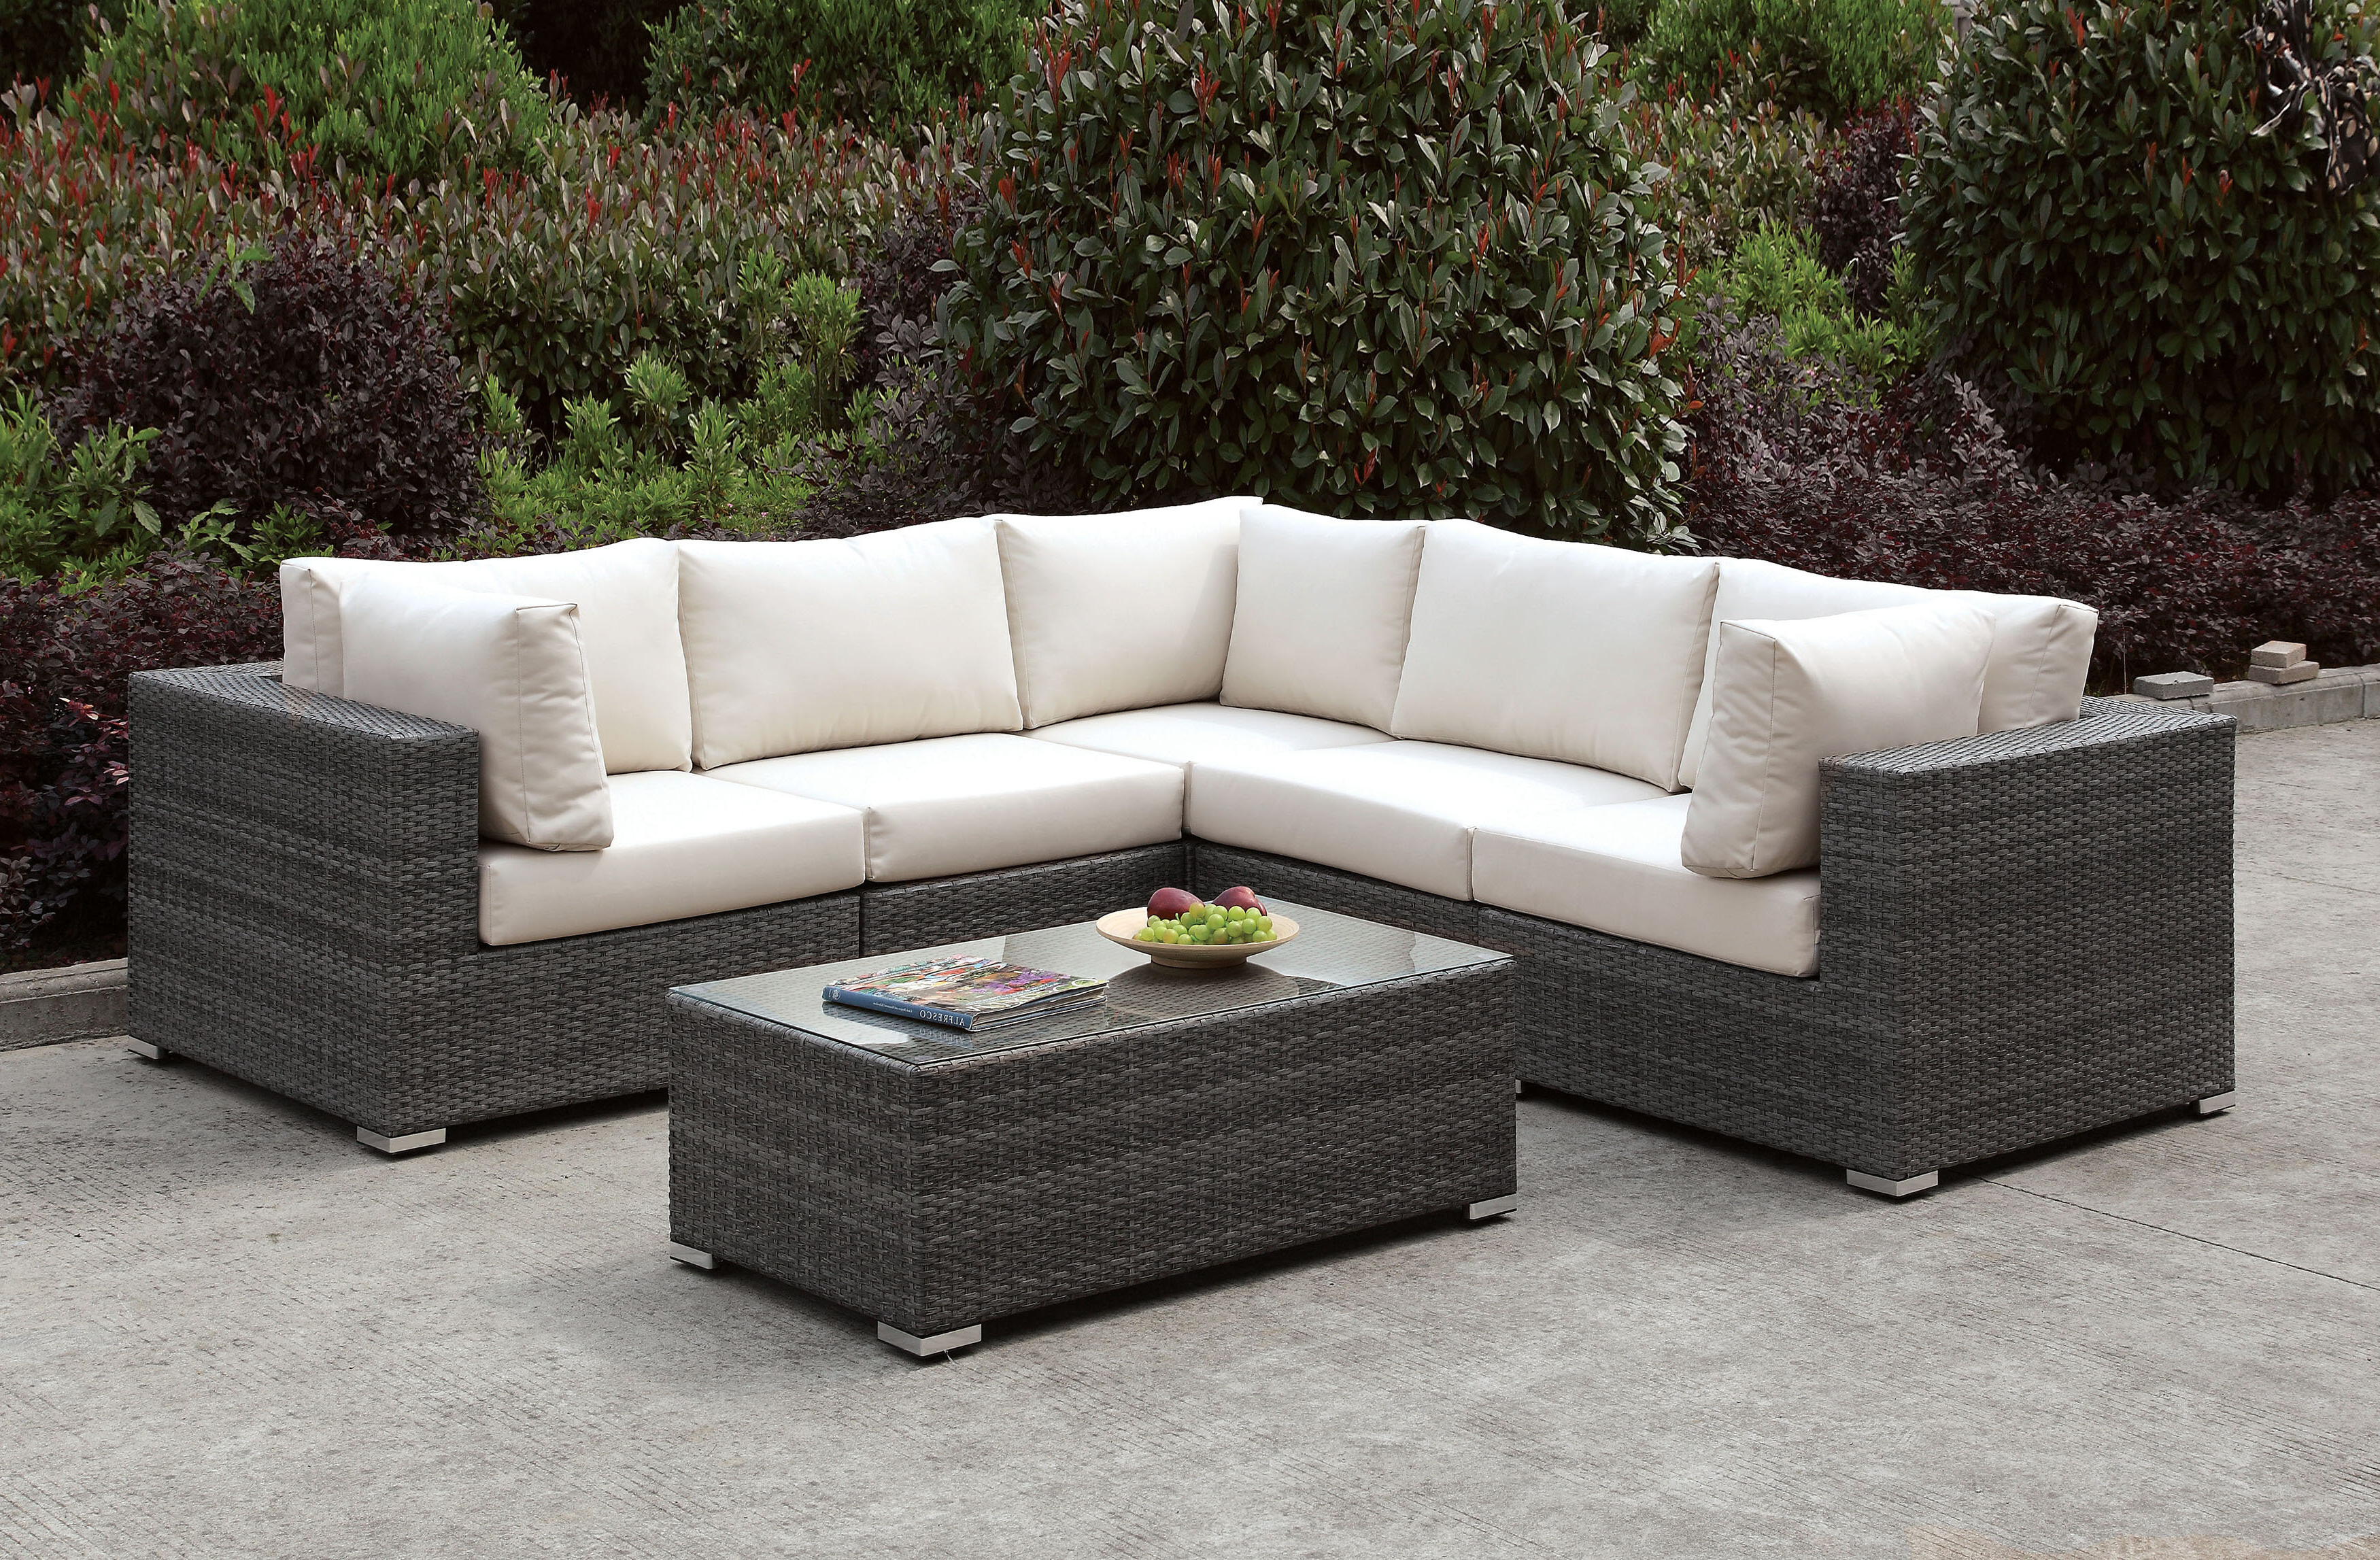 Nolen Patio Sectionals With Cushions With Regard To Popular Peters 7 Piece Patio Sectional With Cushions (Gallery 13 of 20)